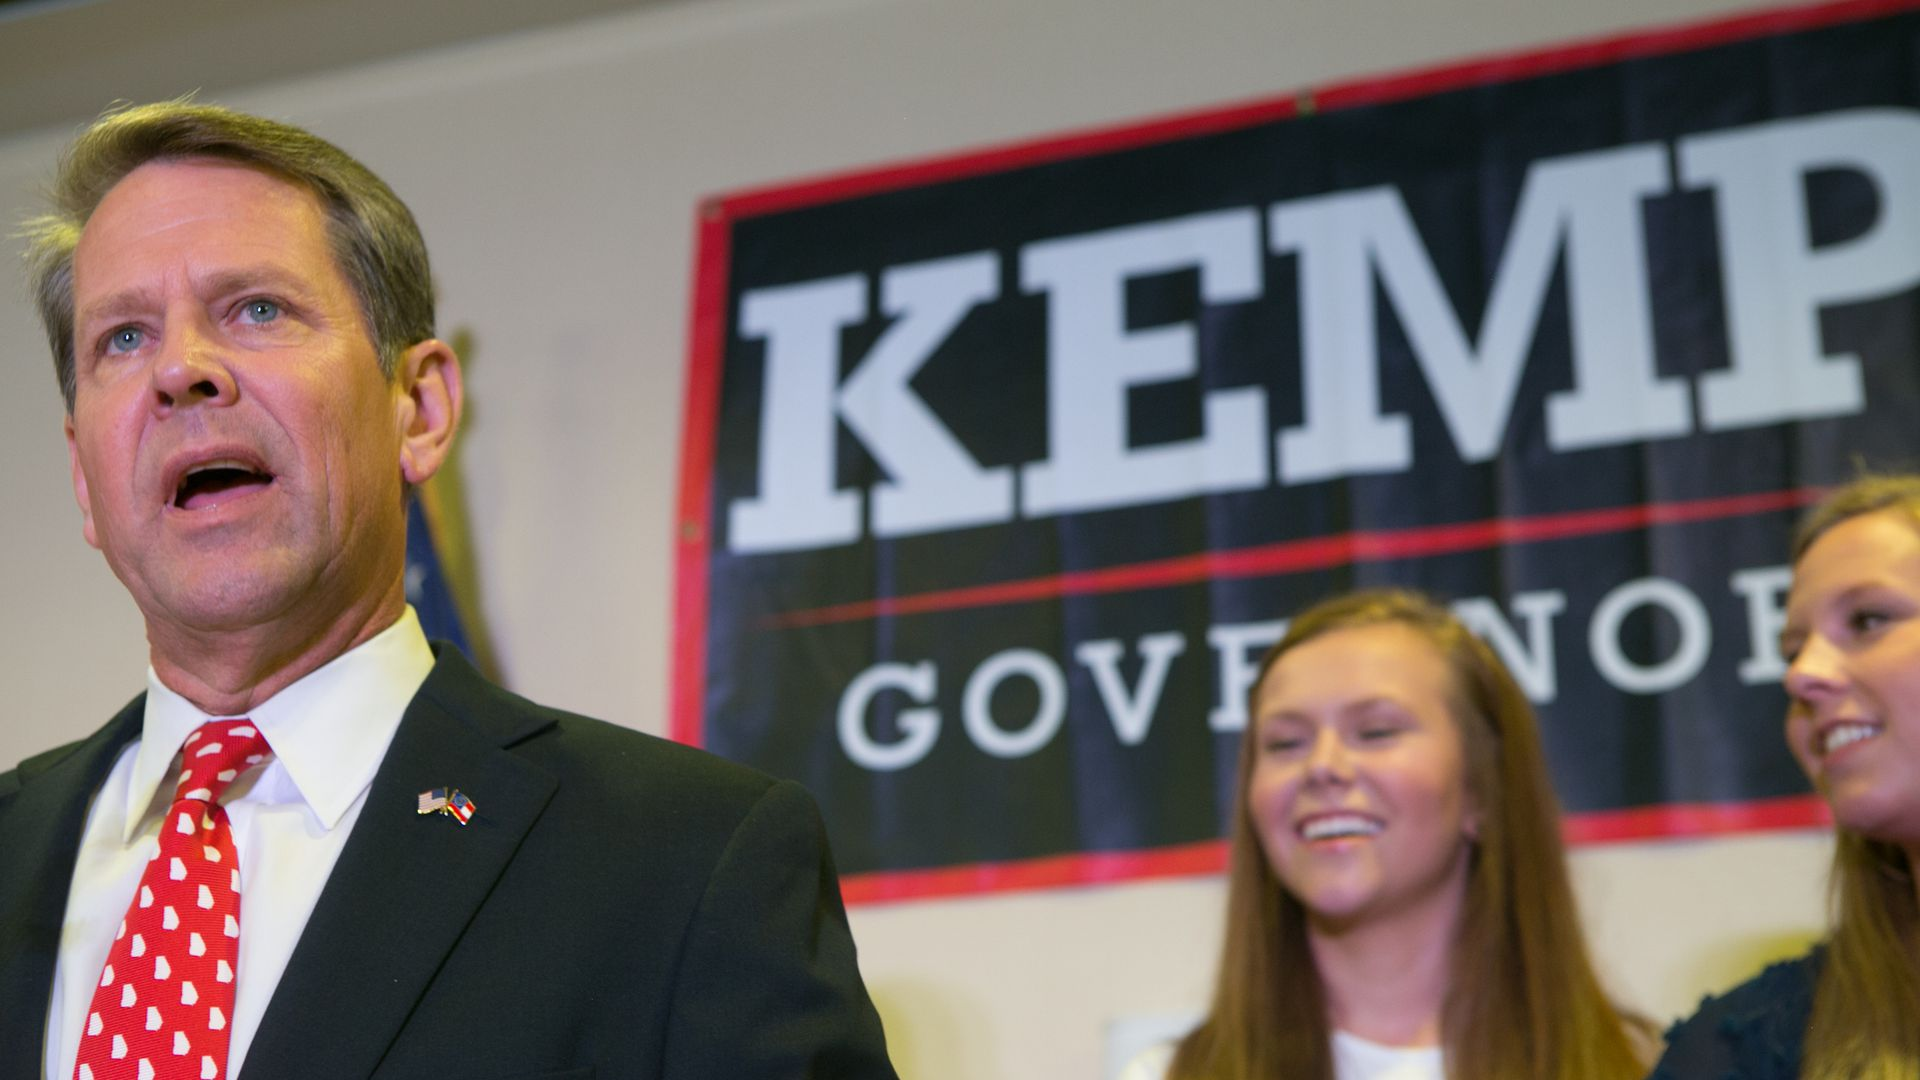 Georgia's Secretary of State Brian Kemp. Photo: Jessica McGowan/Getty Images